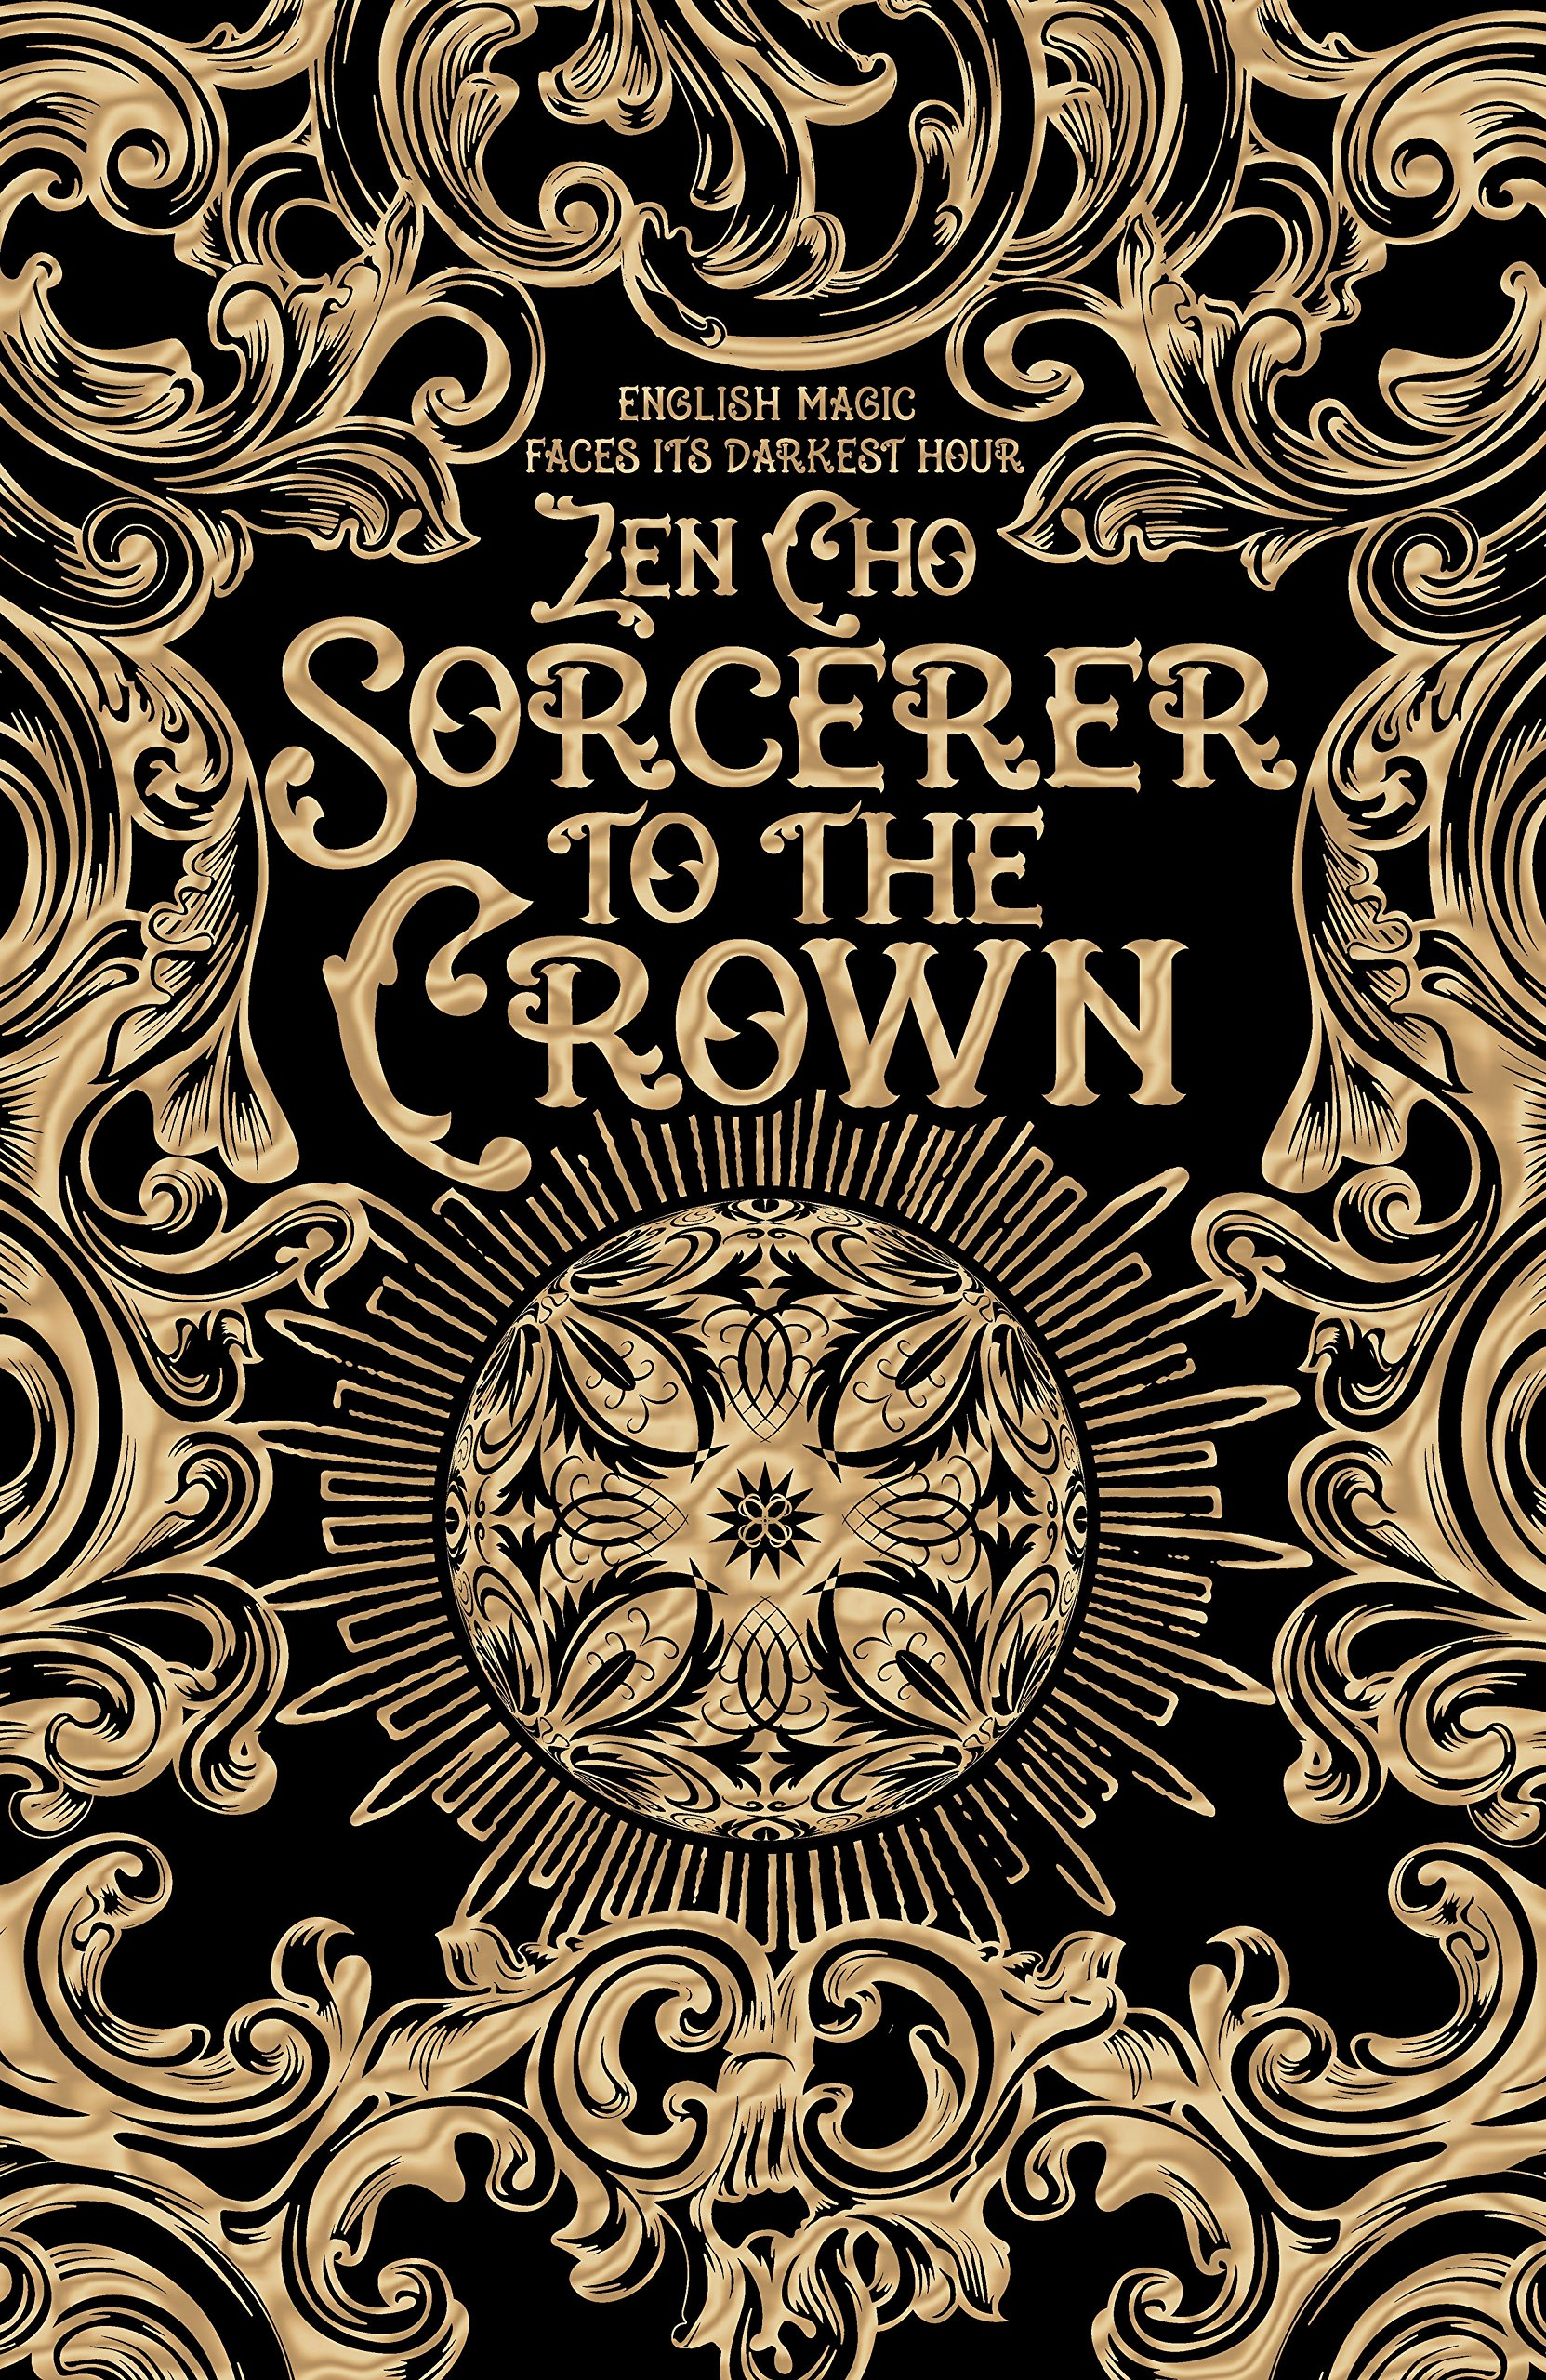 Sorceror to the Crown cover